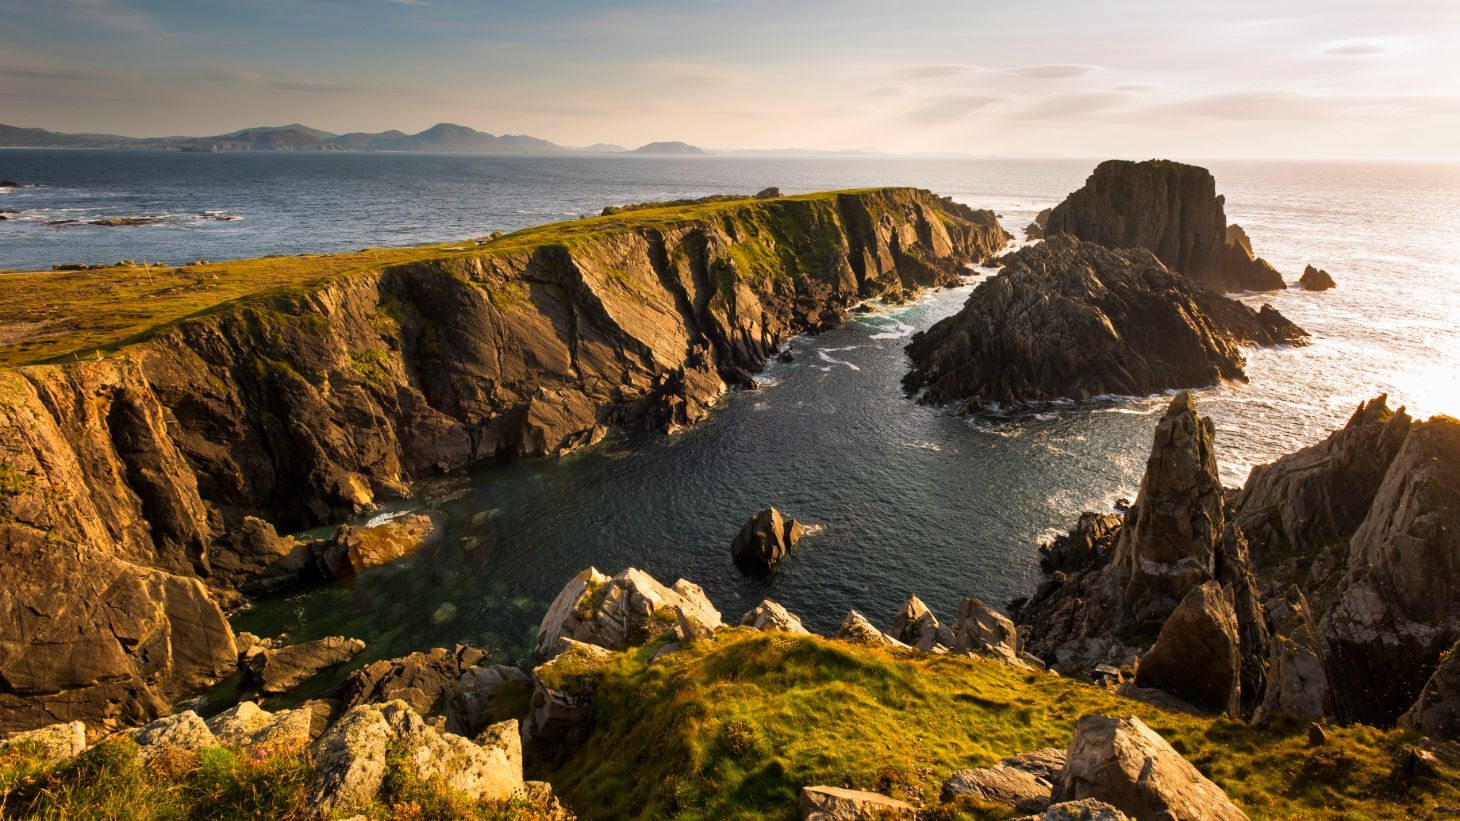 Explore Ireland's most northerly point, Malin Head.